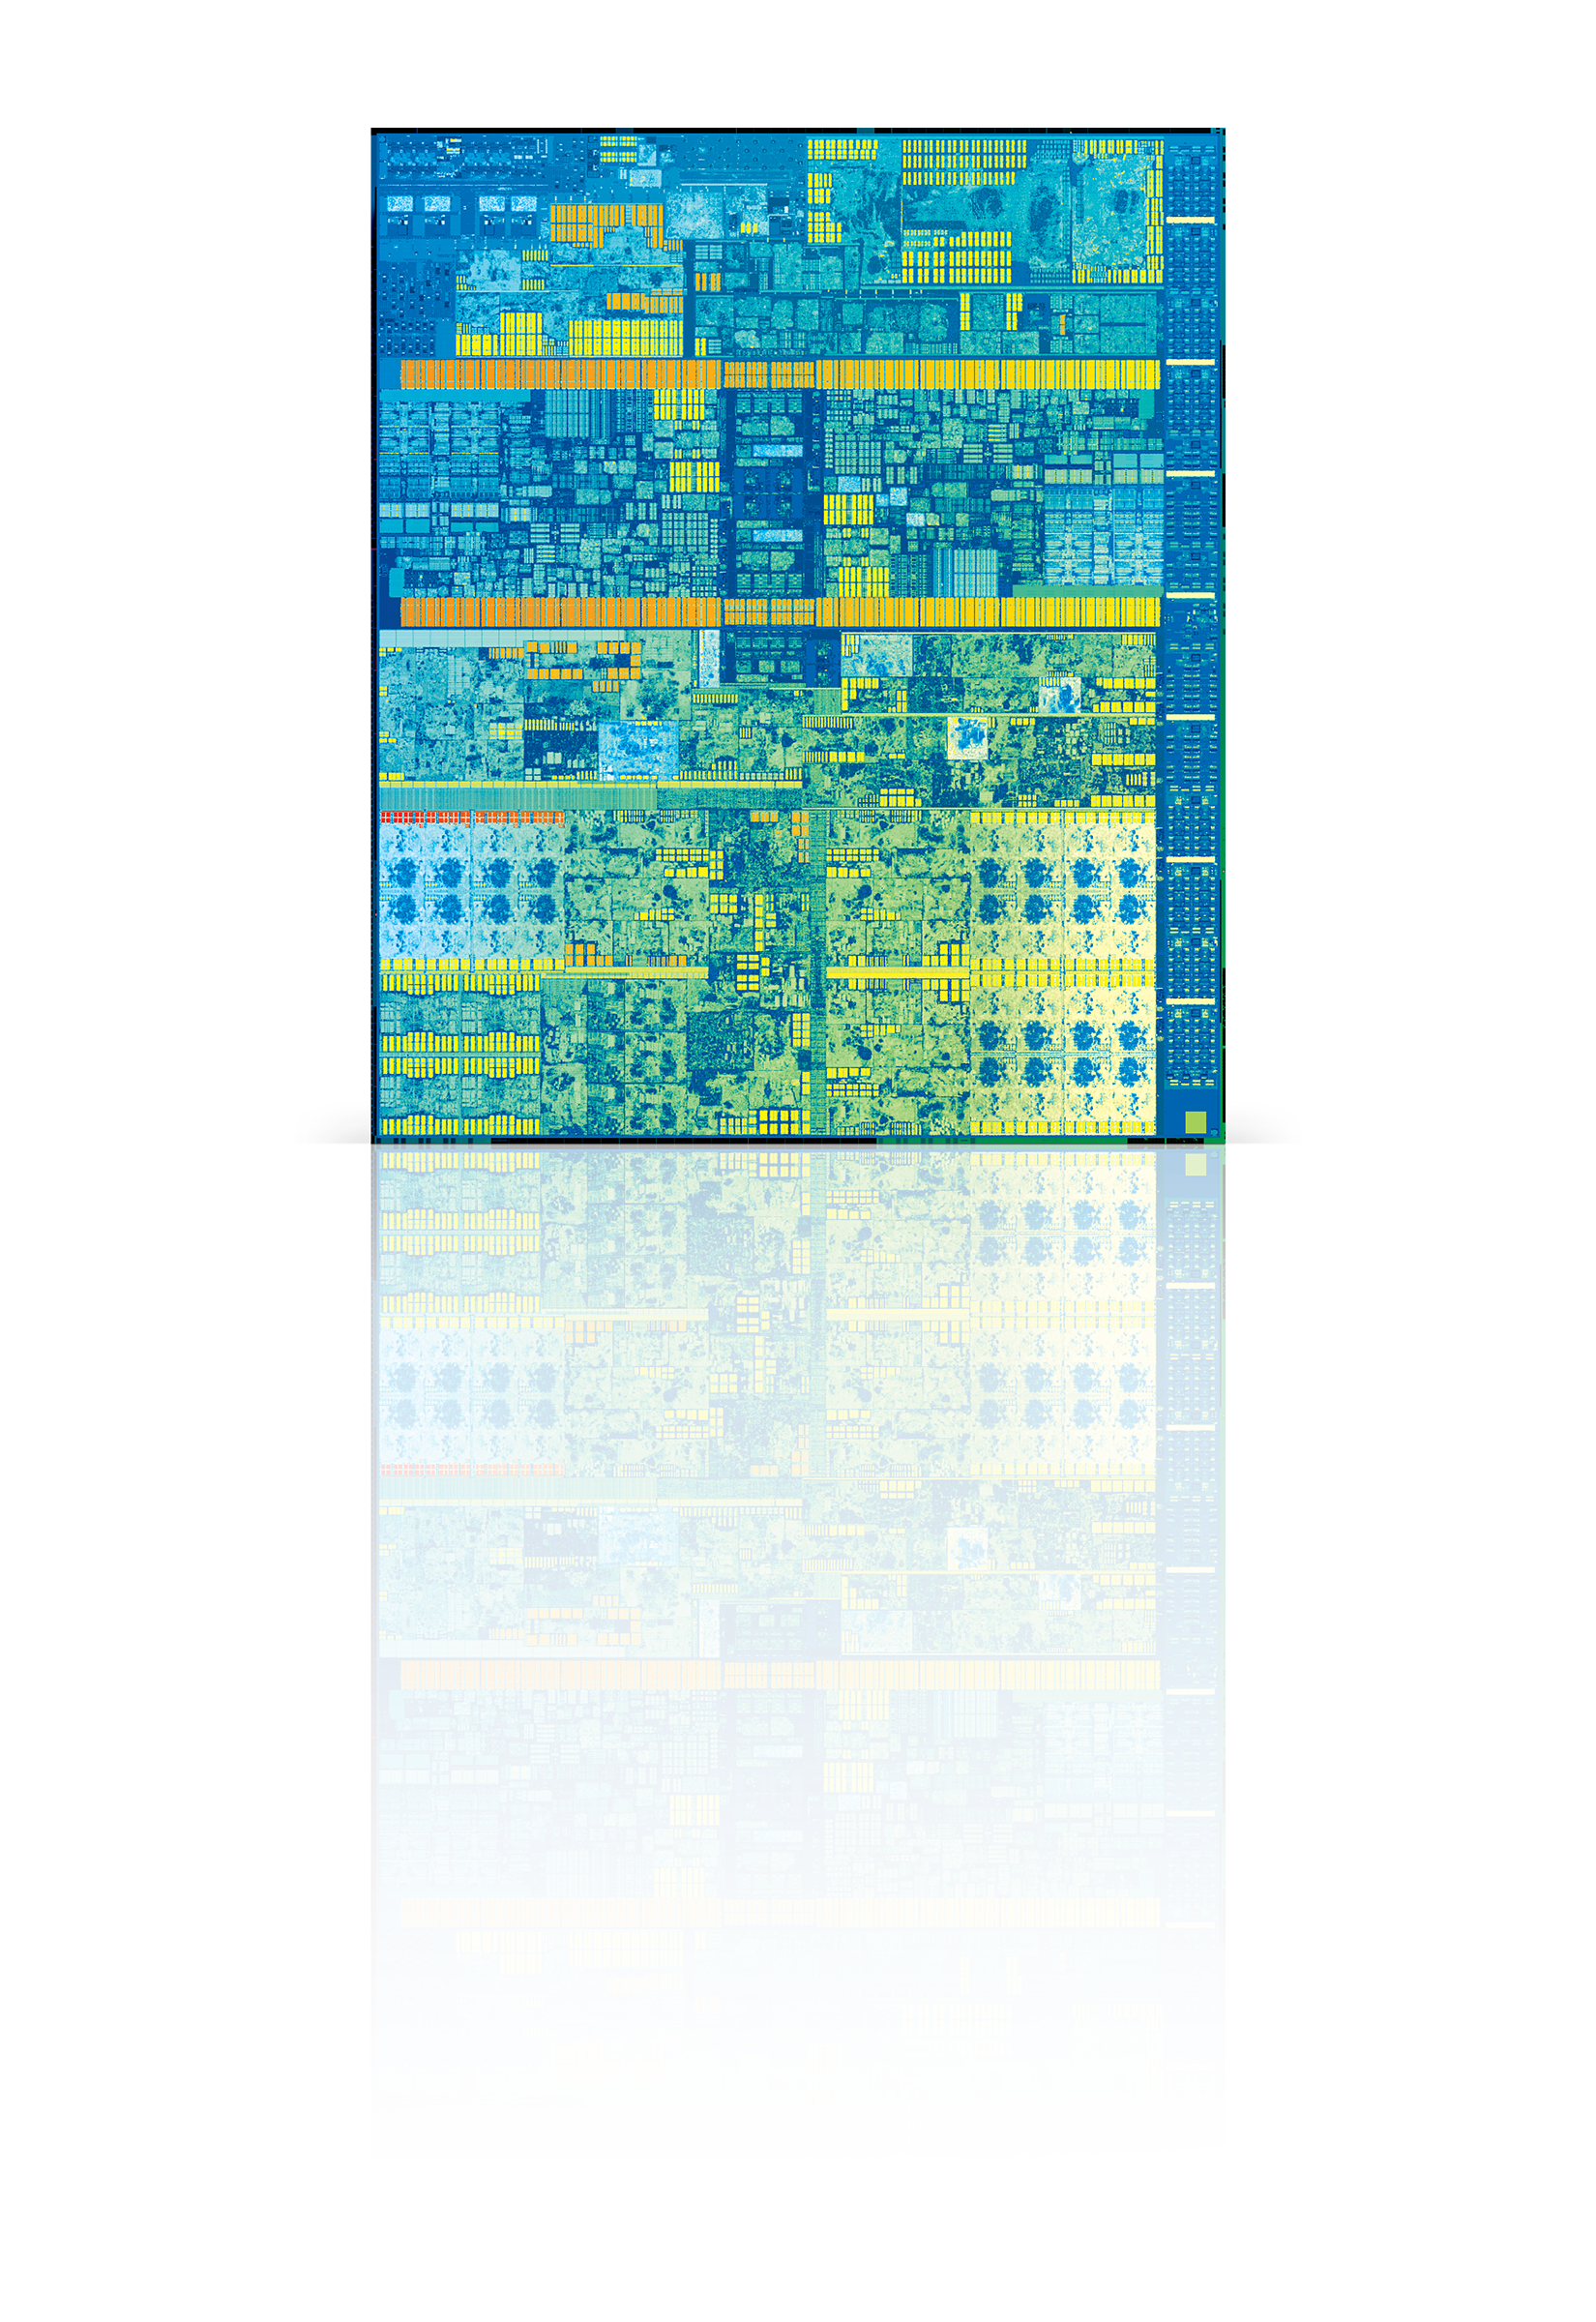 7th Gen Intel Core die with mirror effect